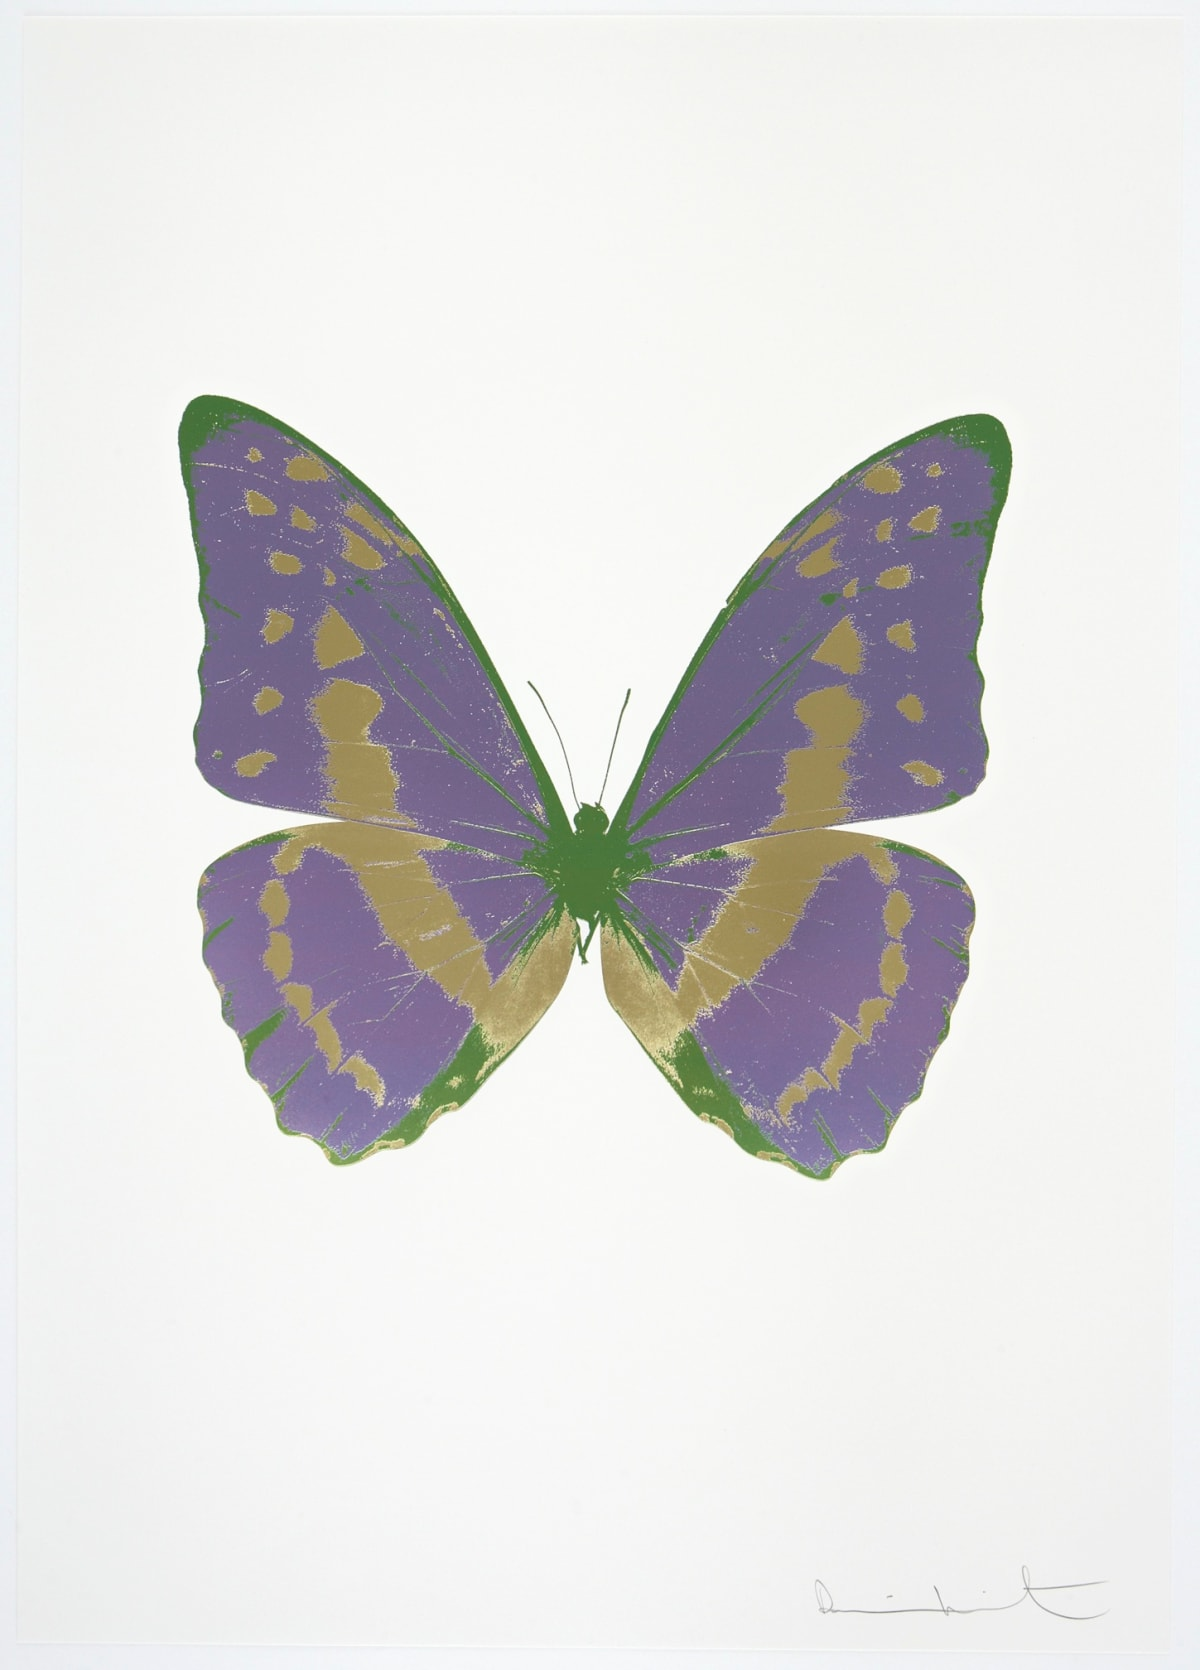 Damien Hirst The Souls III - Aquarius/Cool Gold/Leaf Green, 2010 3 colour foil block on 300gsm Arches 88 archival paper. Signed and numbered. Published by Paul Stolper and Other Criteria 72 x 51cm OC7932 / 660-35 Edition of 15